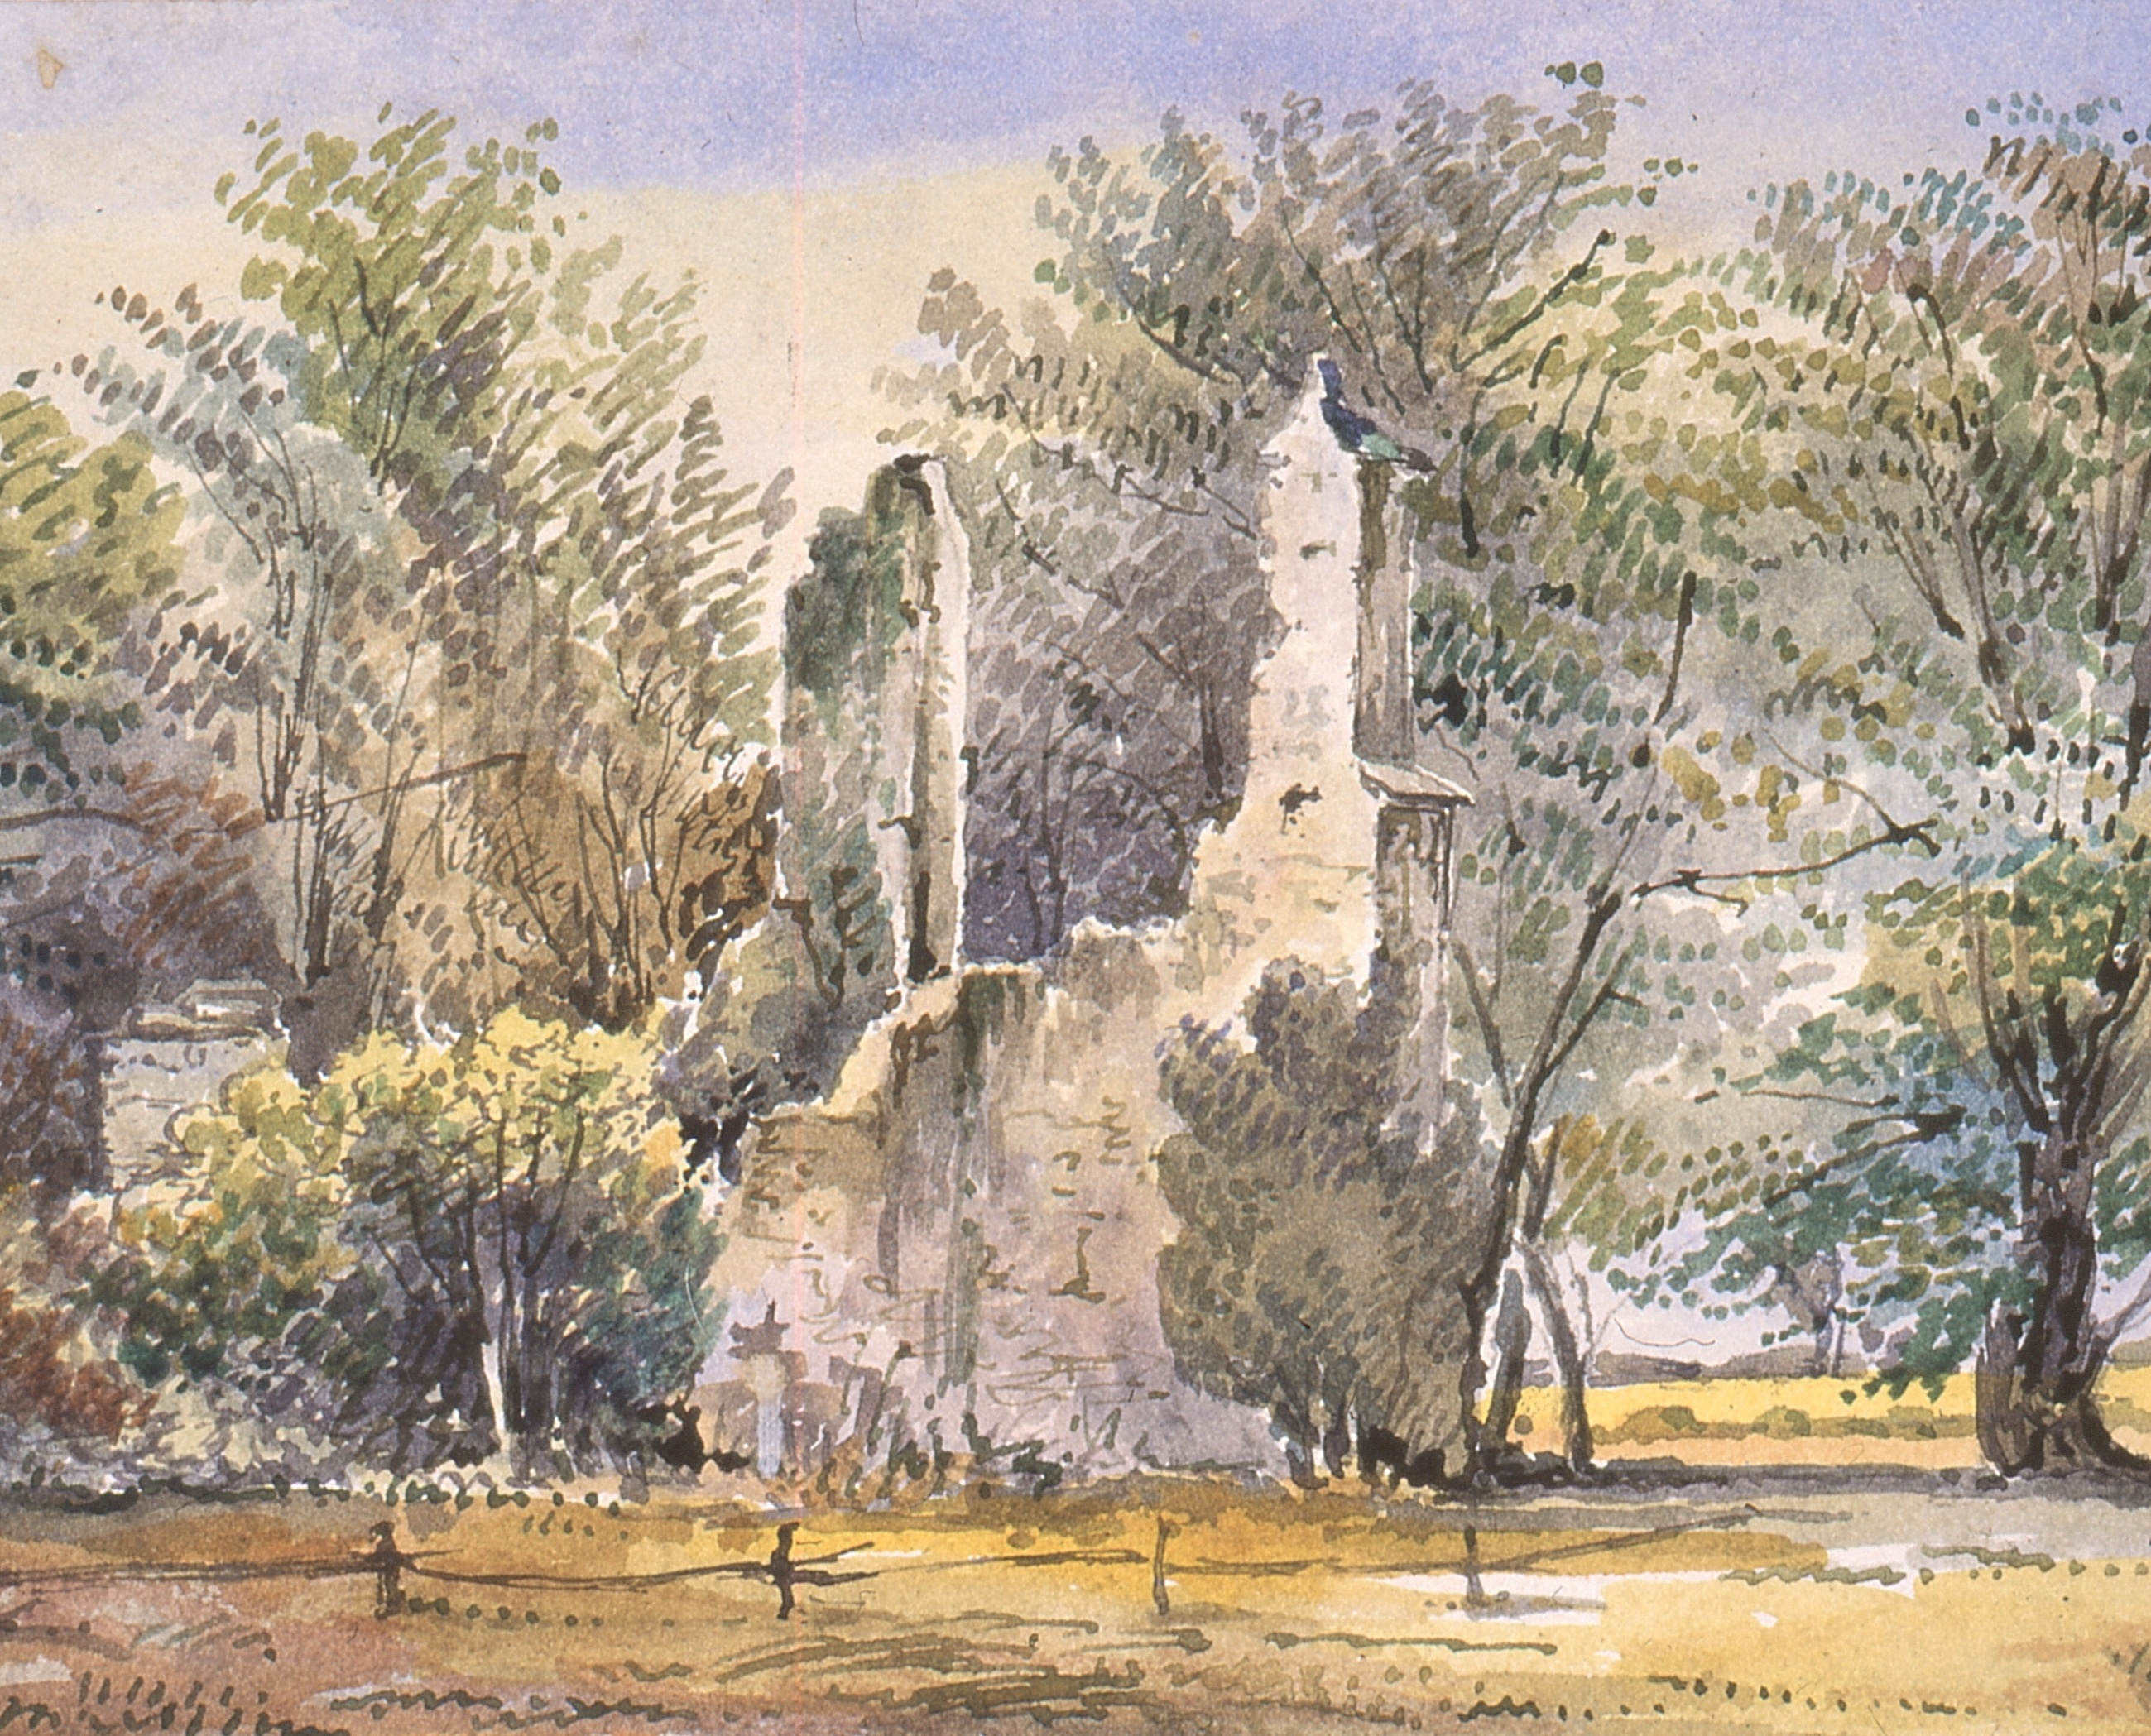 The Ruins of All Saints, circa 1850